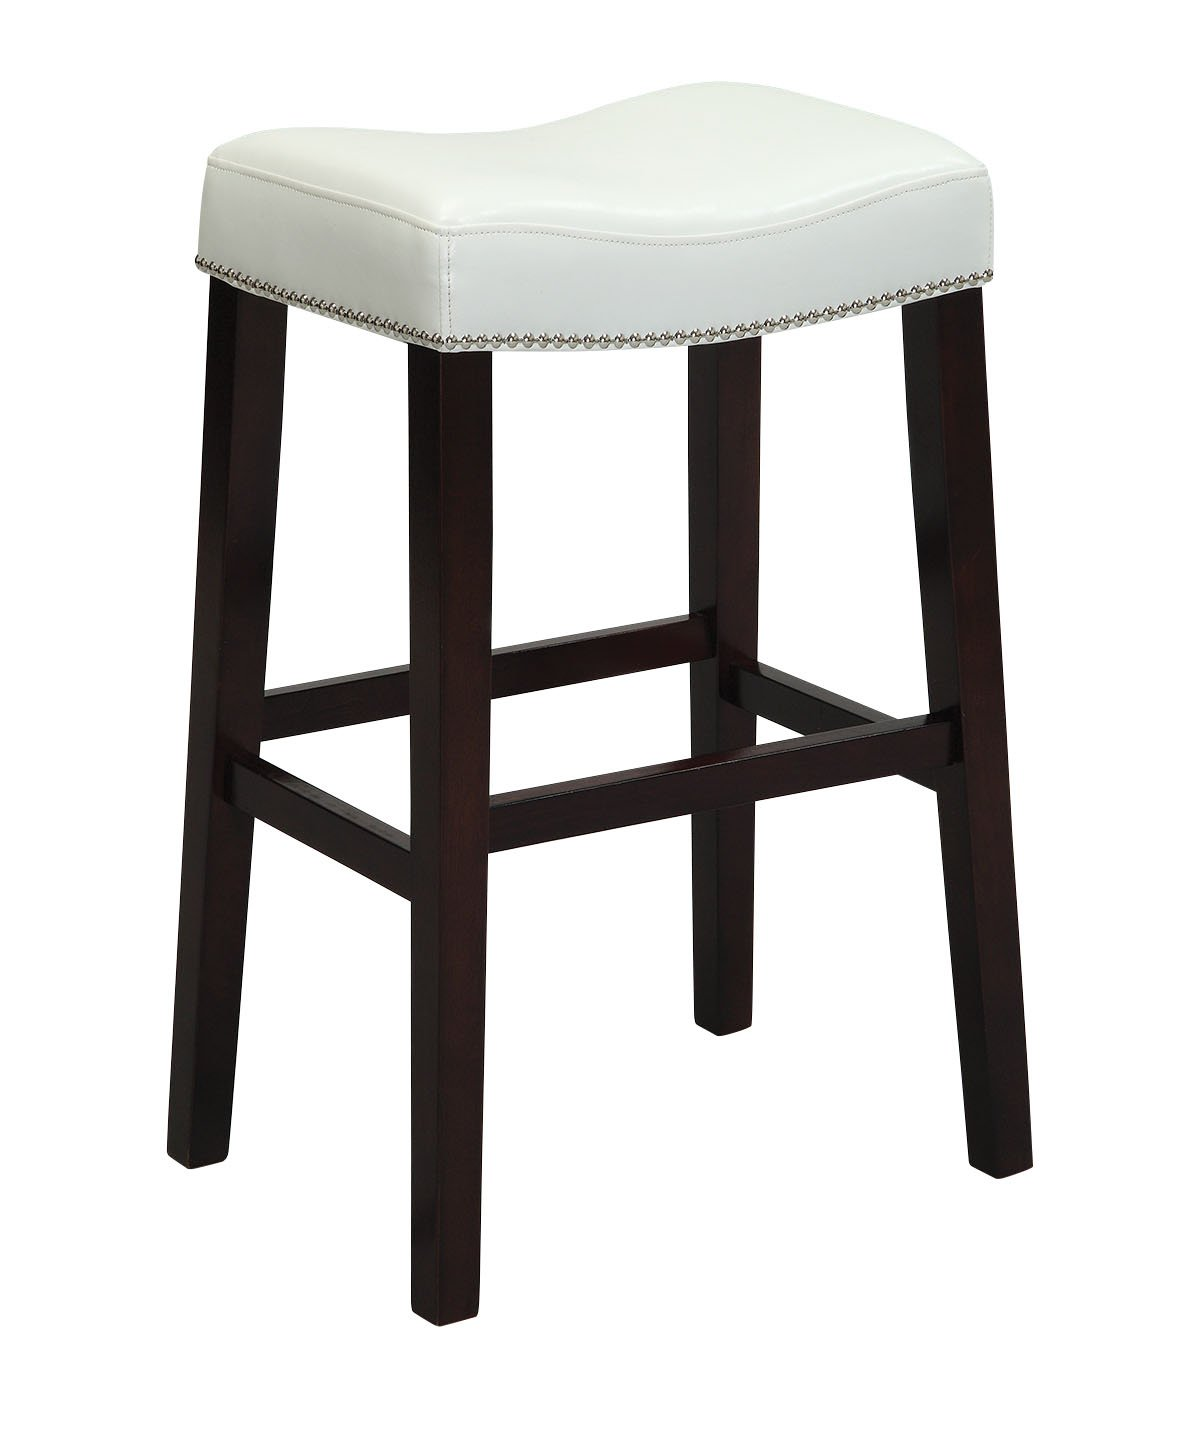 Merveilleux Amazon.com: ACME Lewis Counter Height Stool (Set Of 2), White PU And  Espresso: Kitchen U0026 Dining